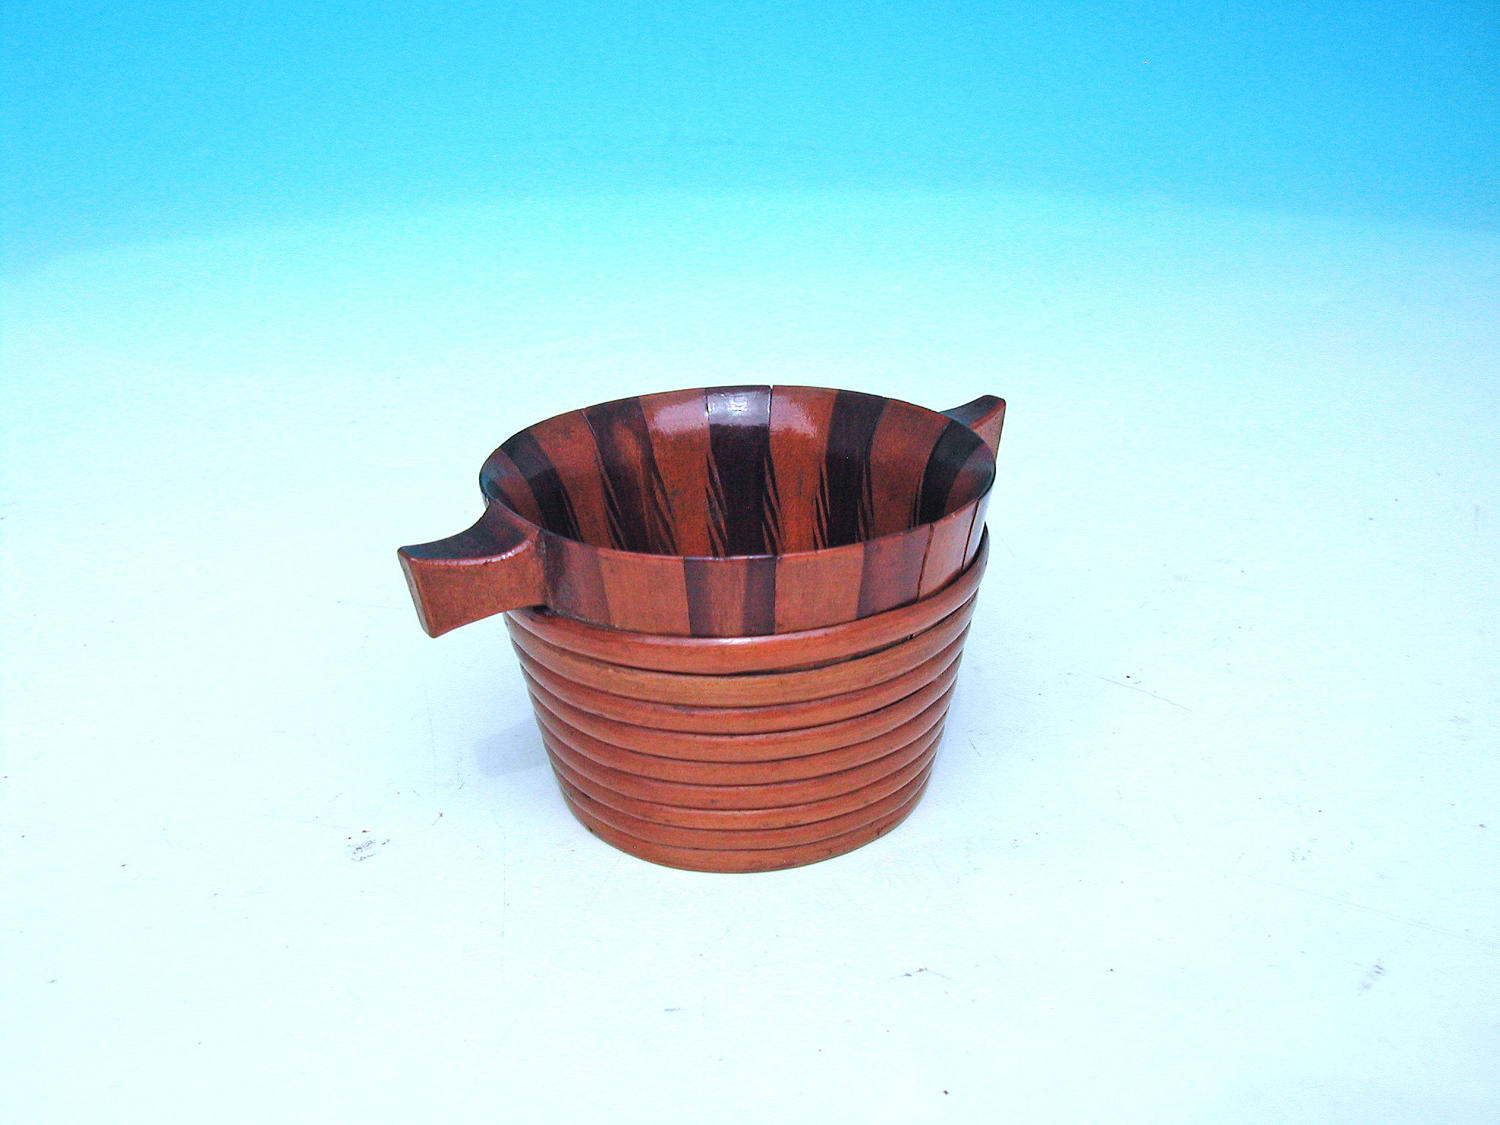 Antique Treen 19thc Small Bicker Drinking Vessel. Scottish C1840-60.